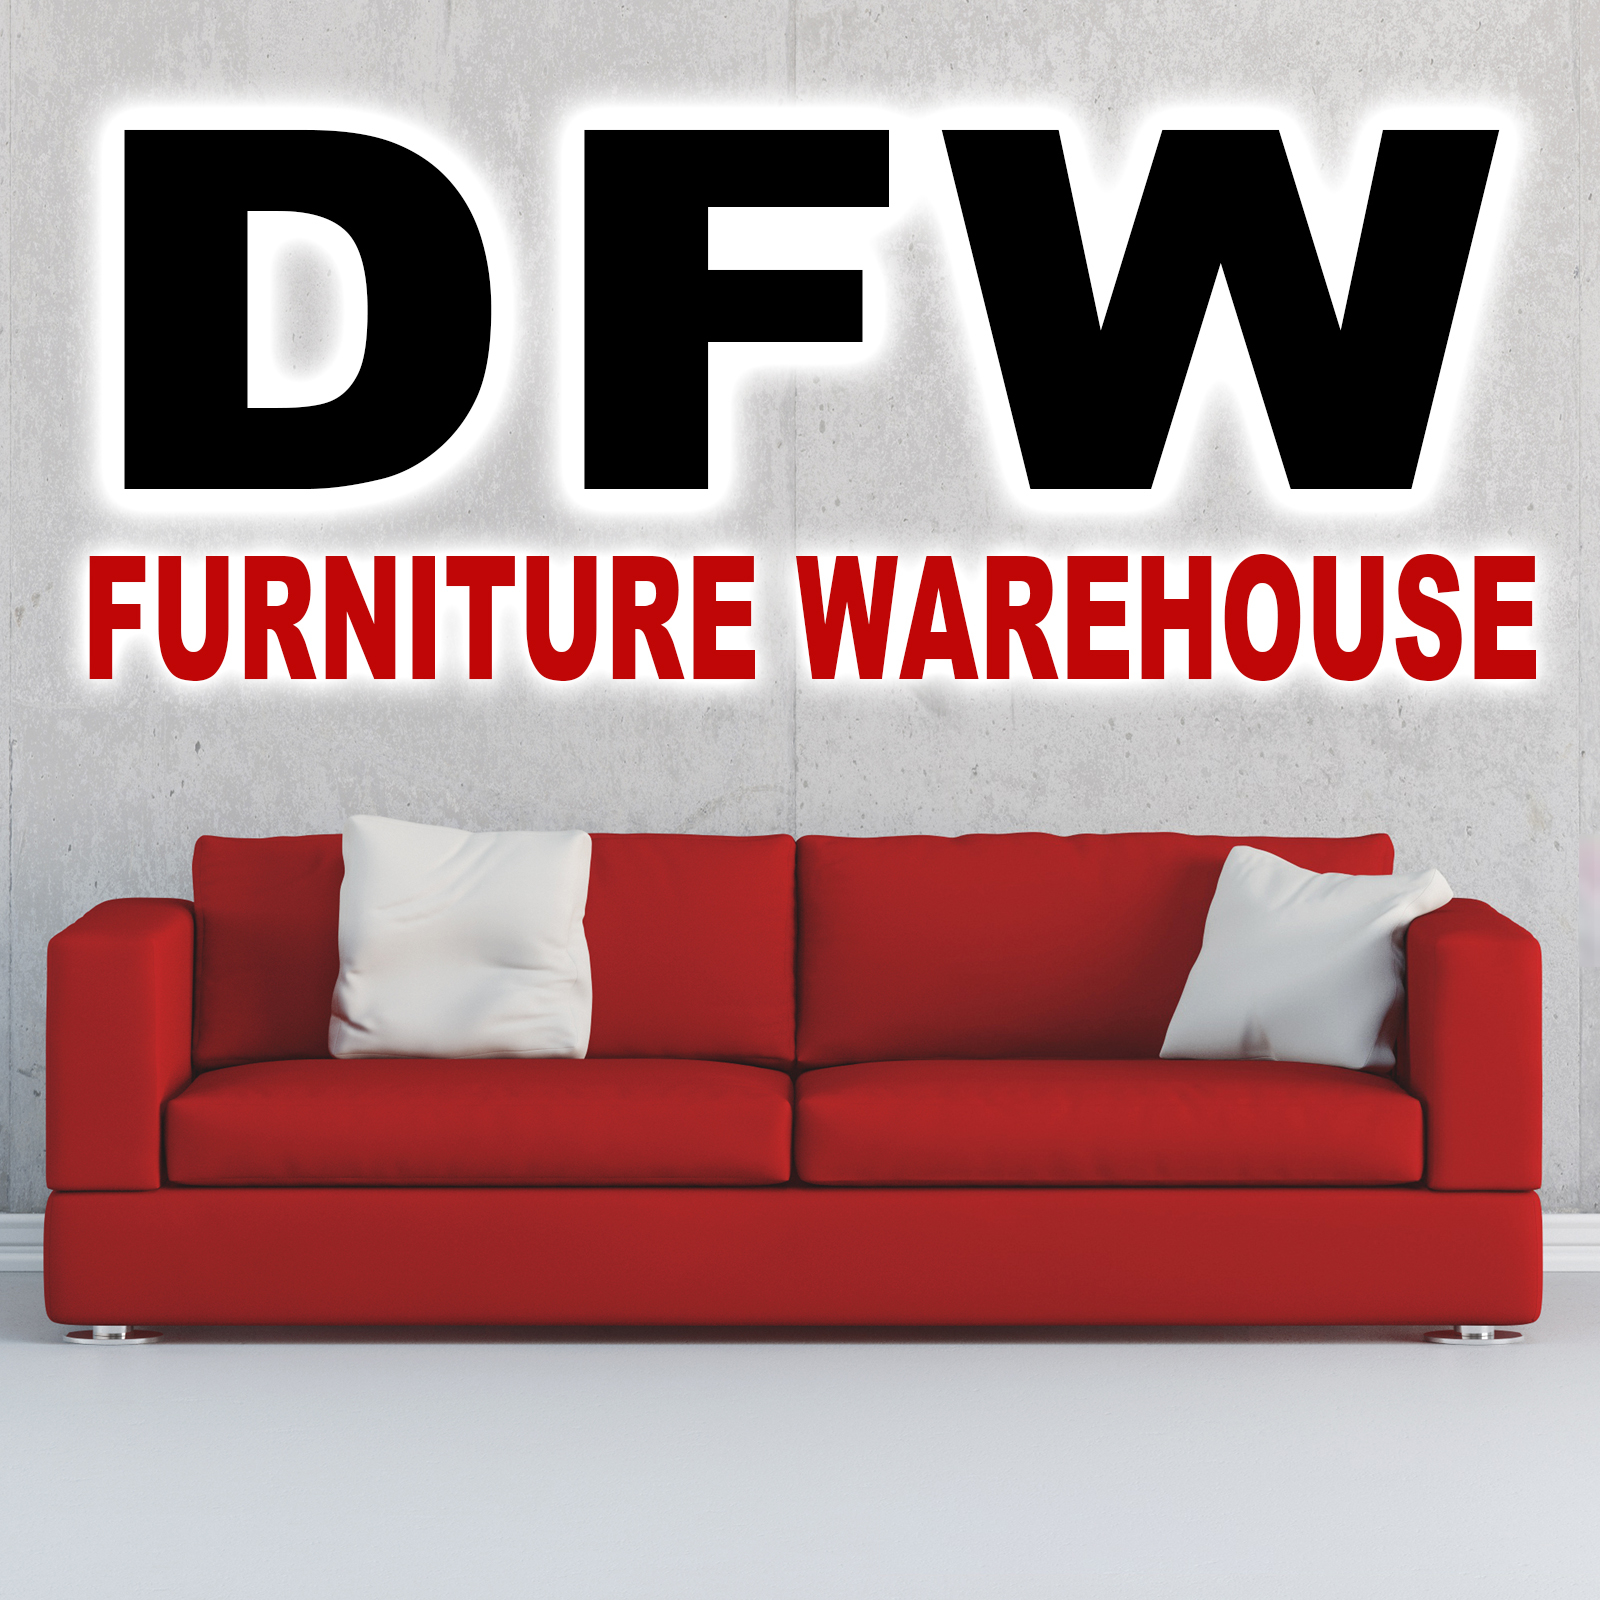 Dfw furniture warehouse san leandro california ca for L furniture warehouse